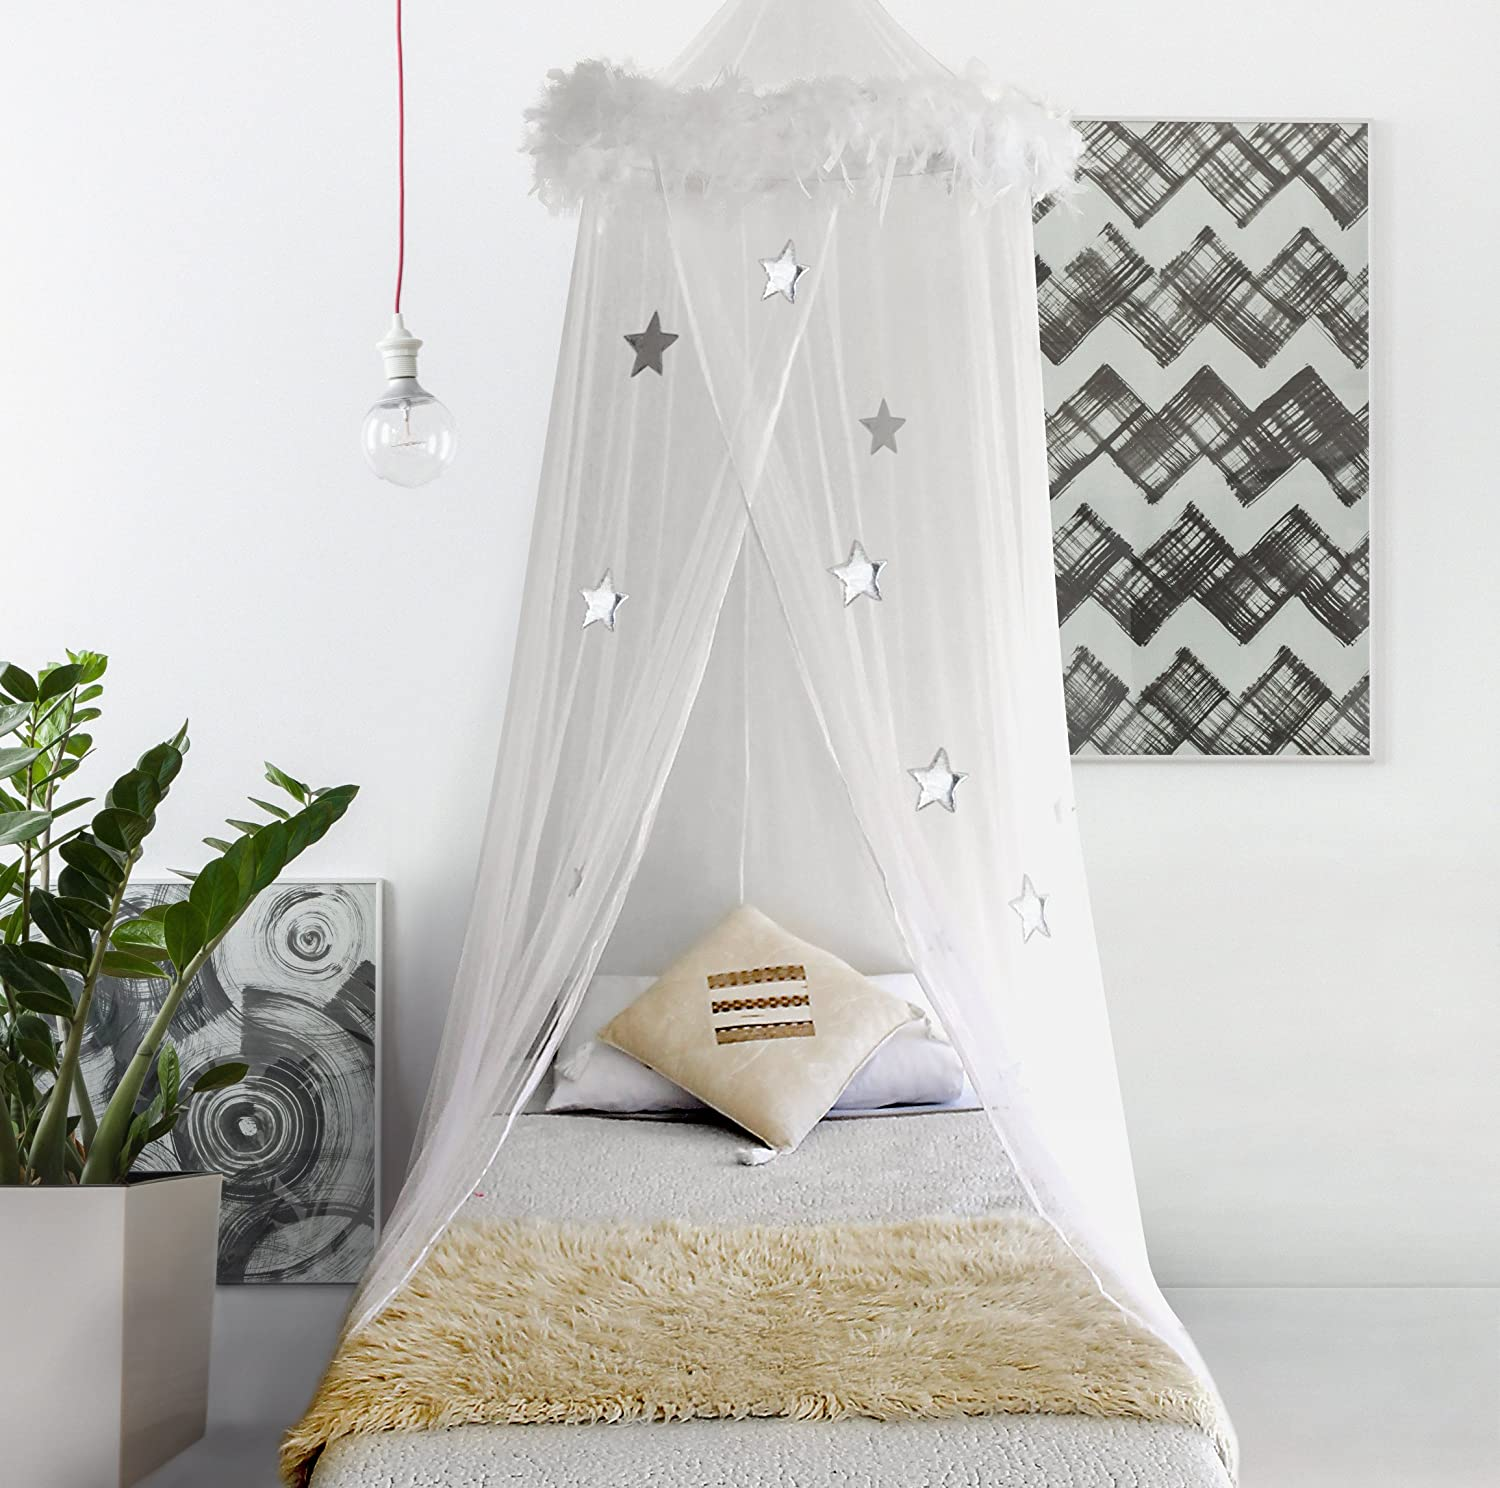 Amazon com  Boho   Beach Bed Canopy Mosquito Net Curtains with Feathers and  Stars for Girls Toddlers and Teens  White  Home   Kitchen. Amazon com  Boho   Beach Bed Canopy Mosquito Net Curtains with